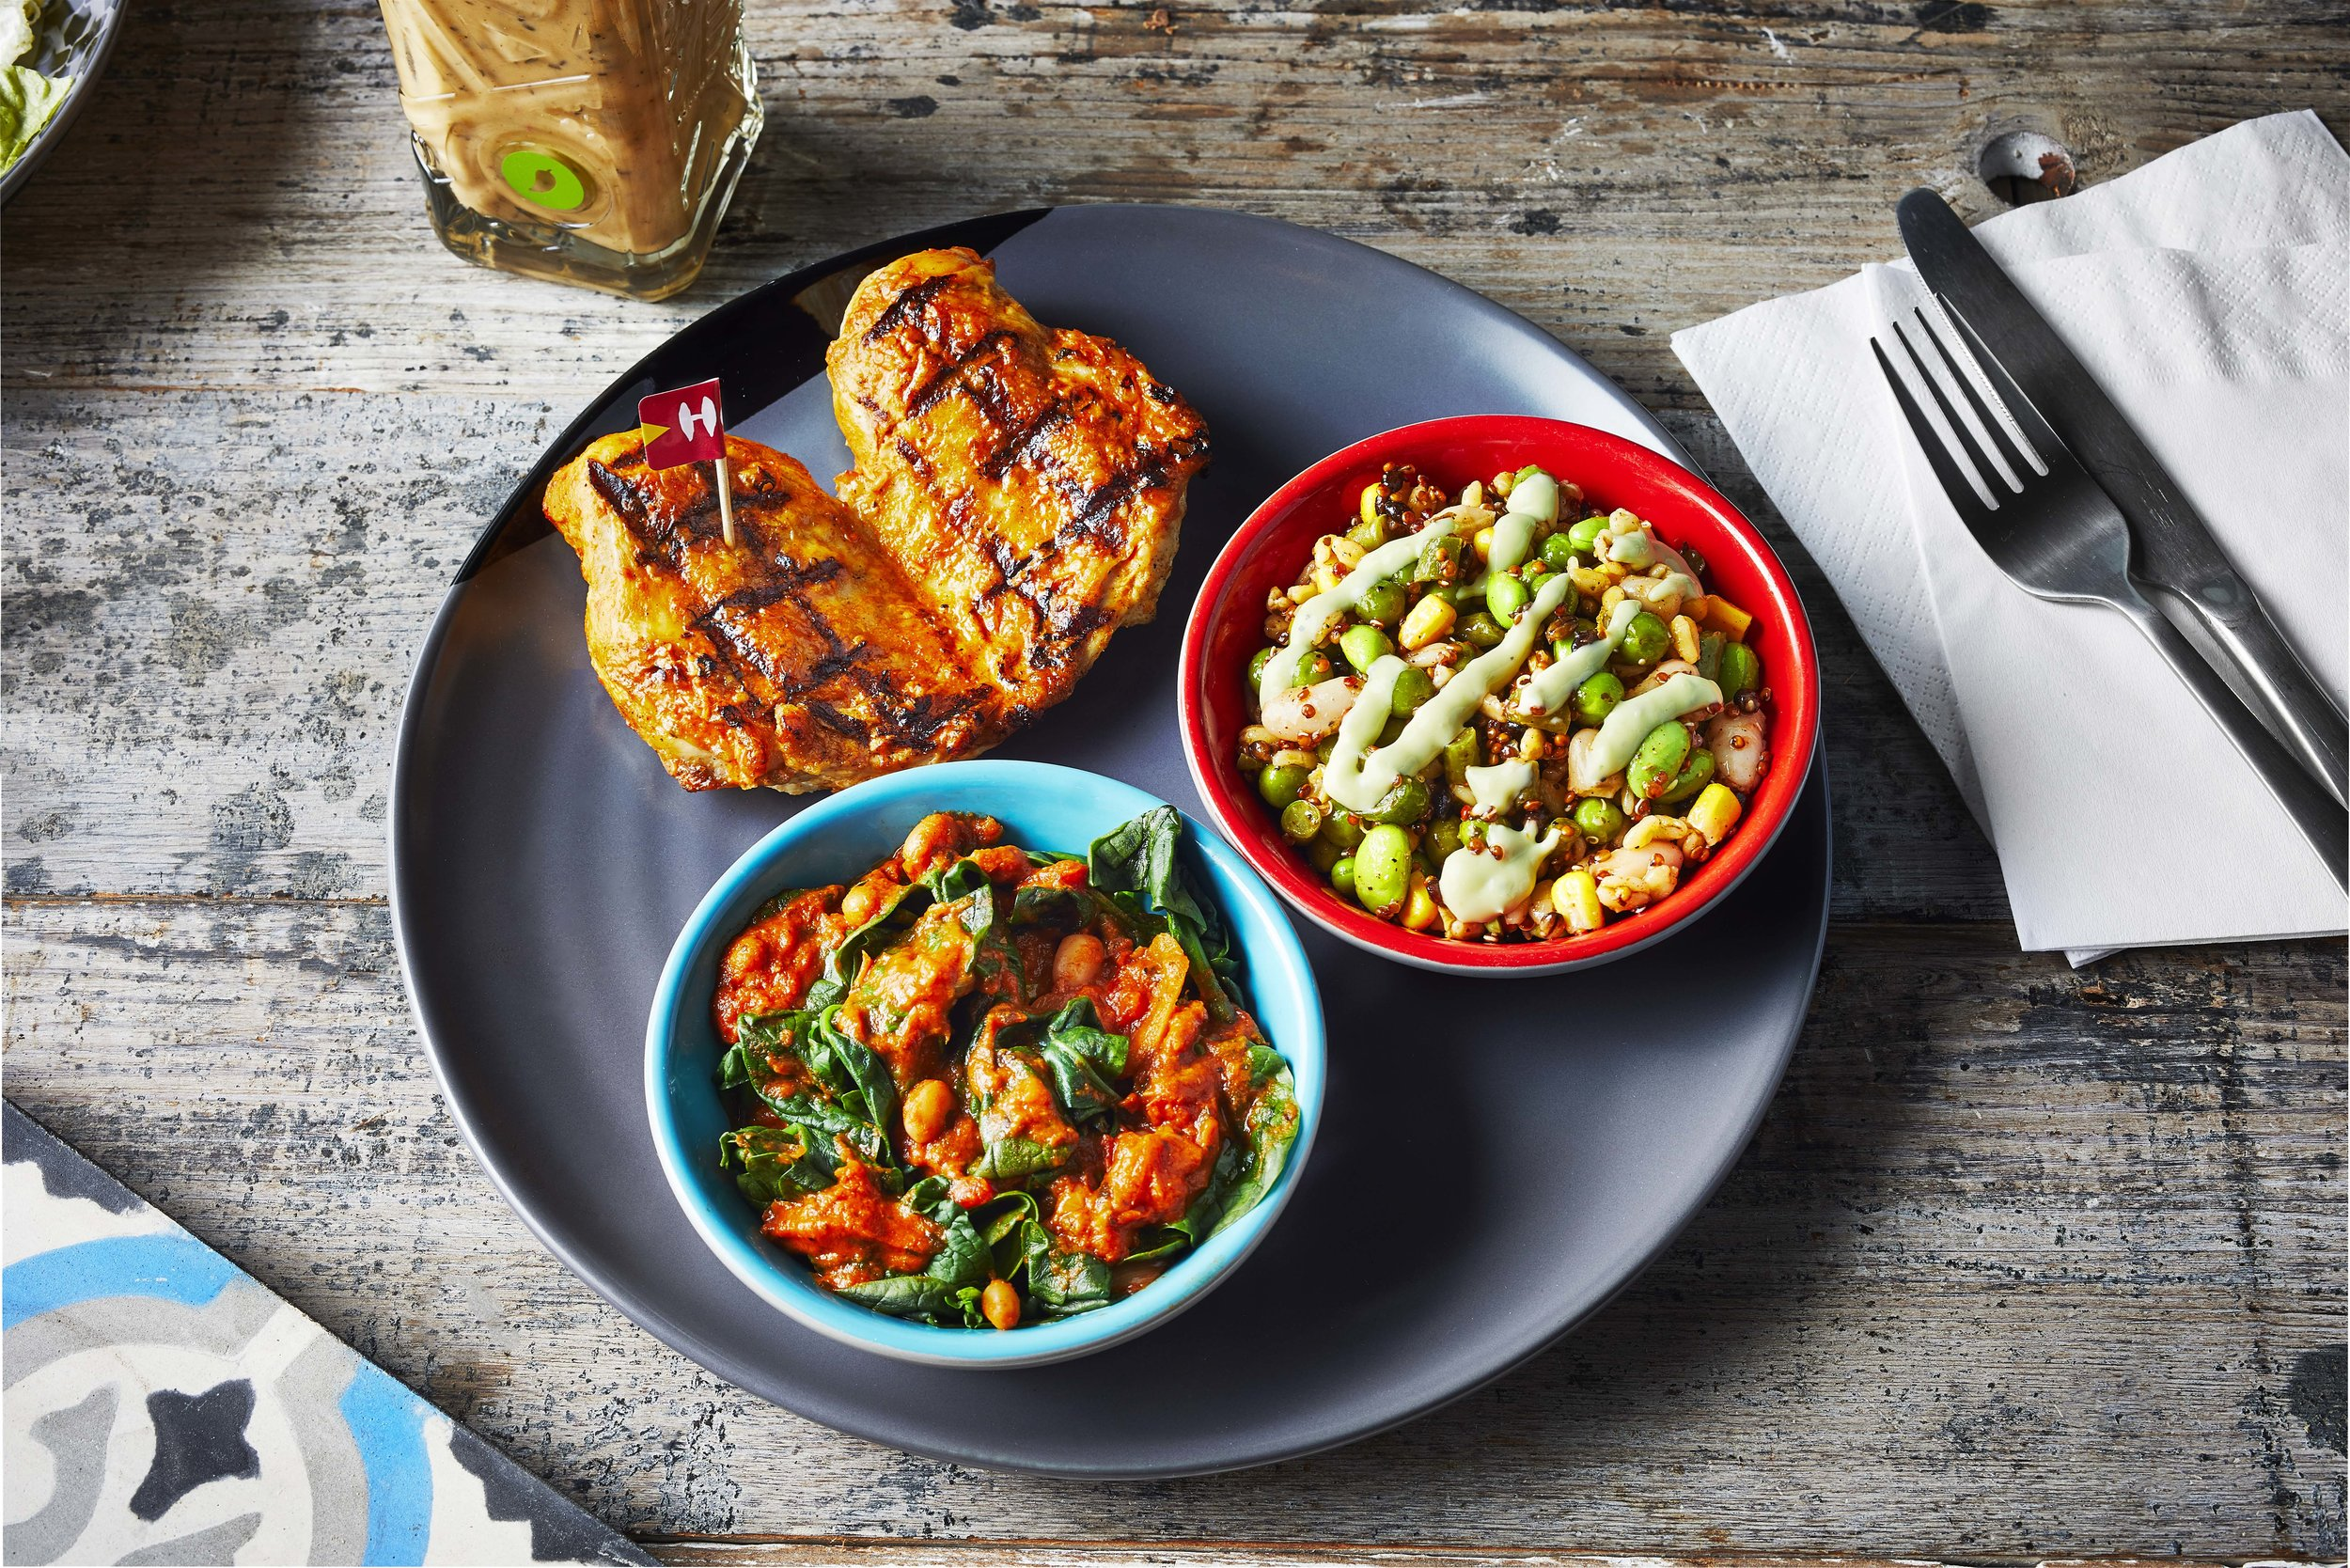 Nando's Chicken Butterfly with Saucy Spinach and Grains 'n Greens.jpg